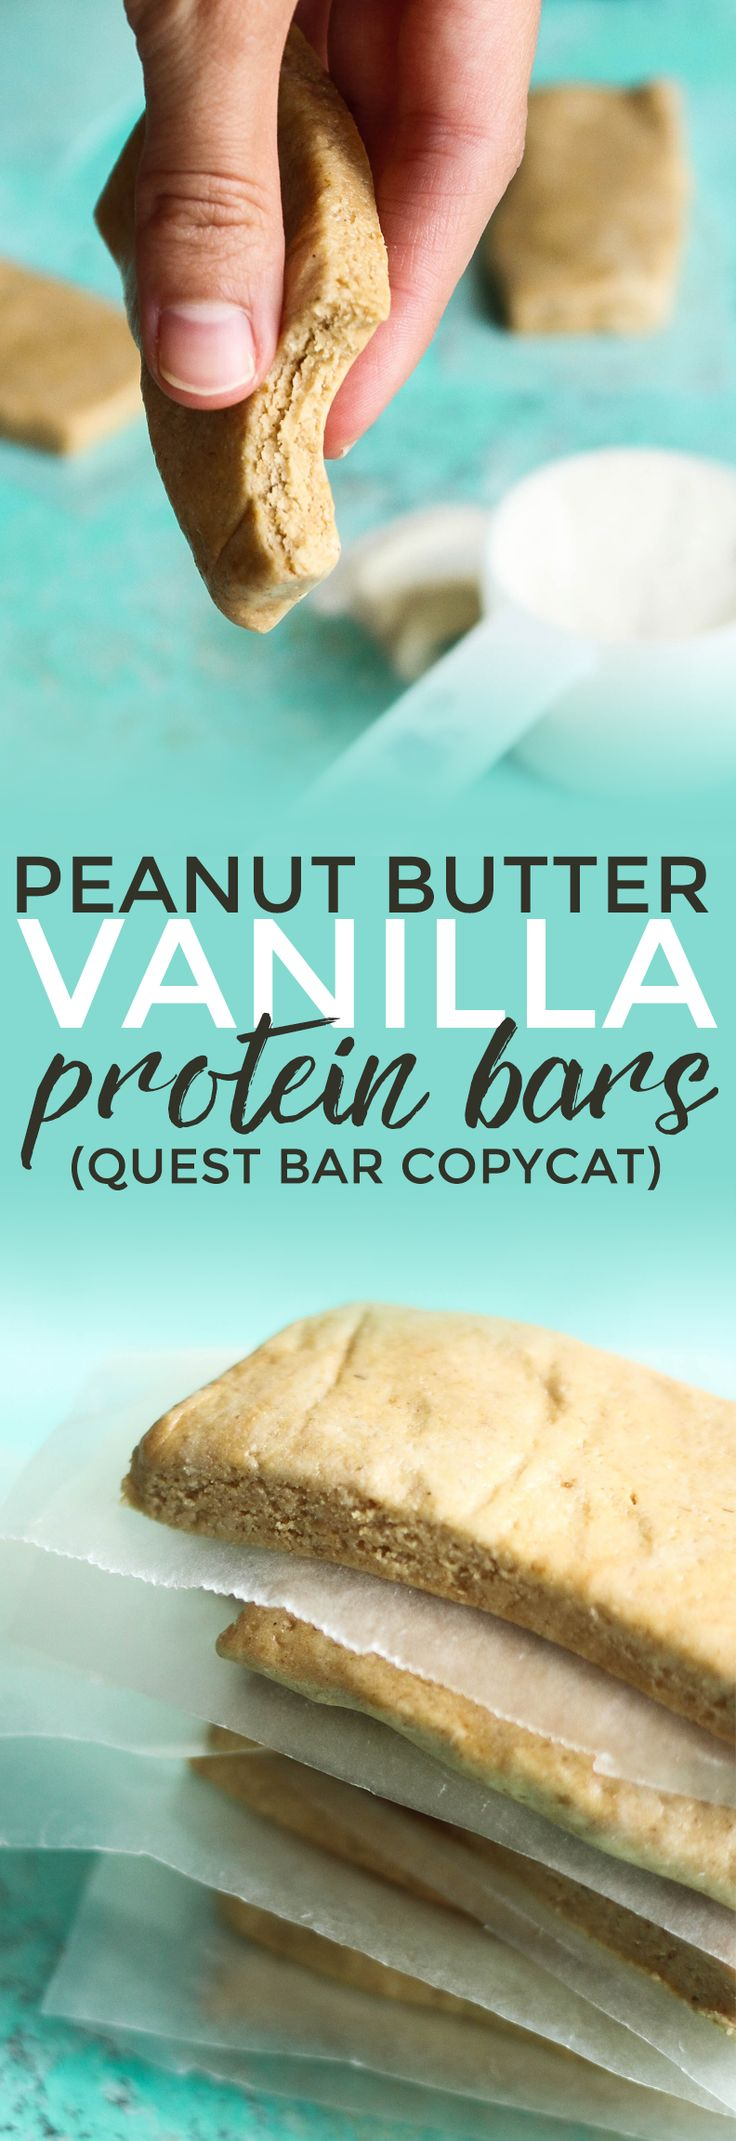 Peanut Butter Vanilla Protein Bars. Only a few ingredients are needed for these protein bars, which are clean eating friendly. Pin now to make this healthy snack recipe later.